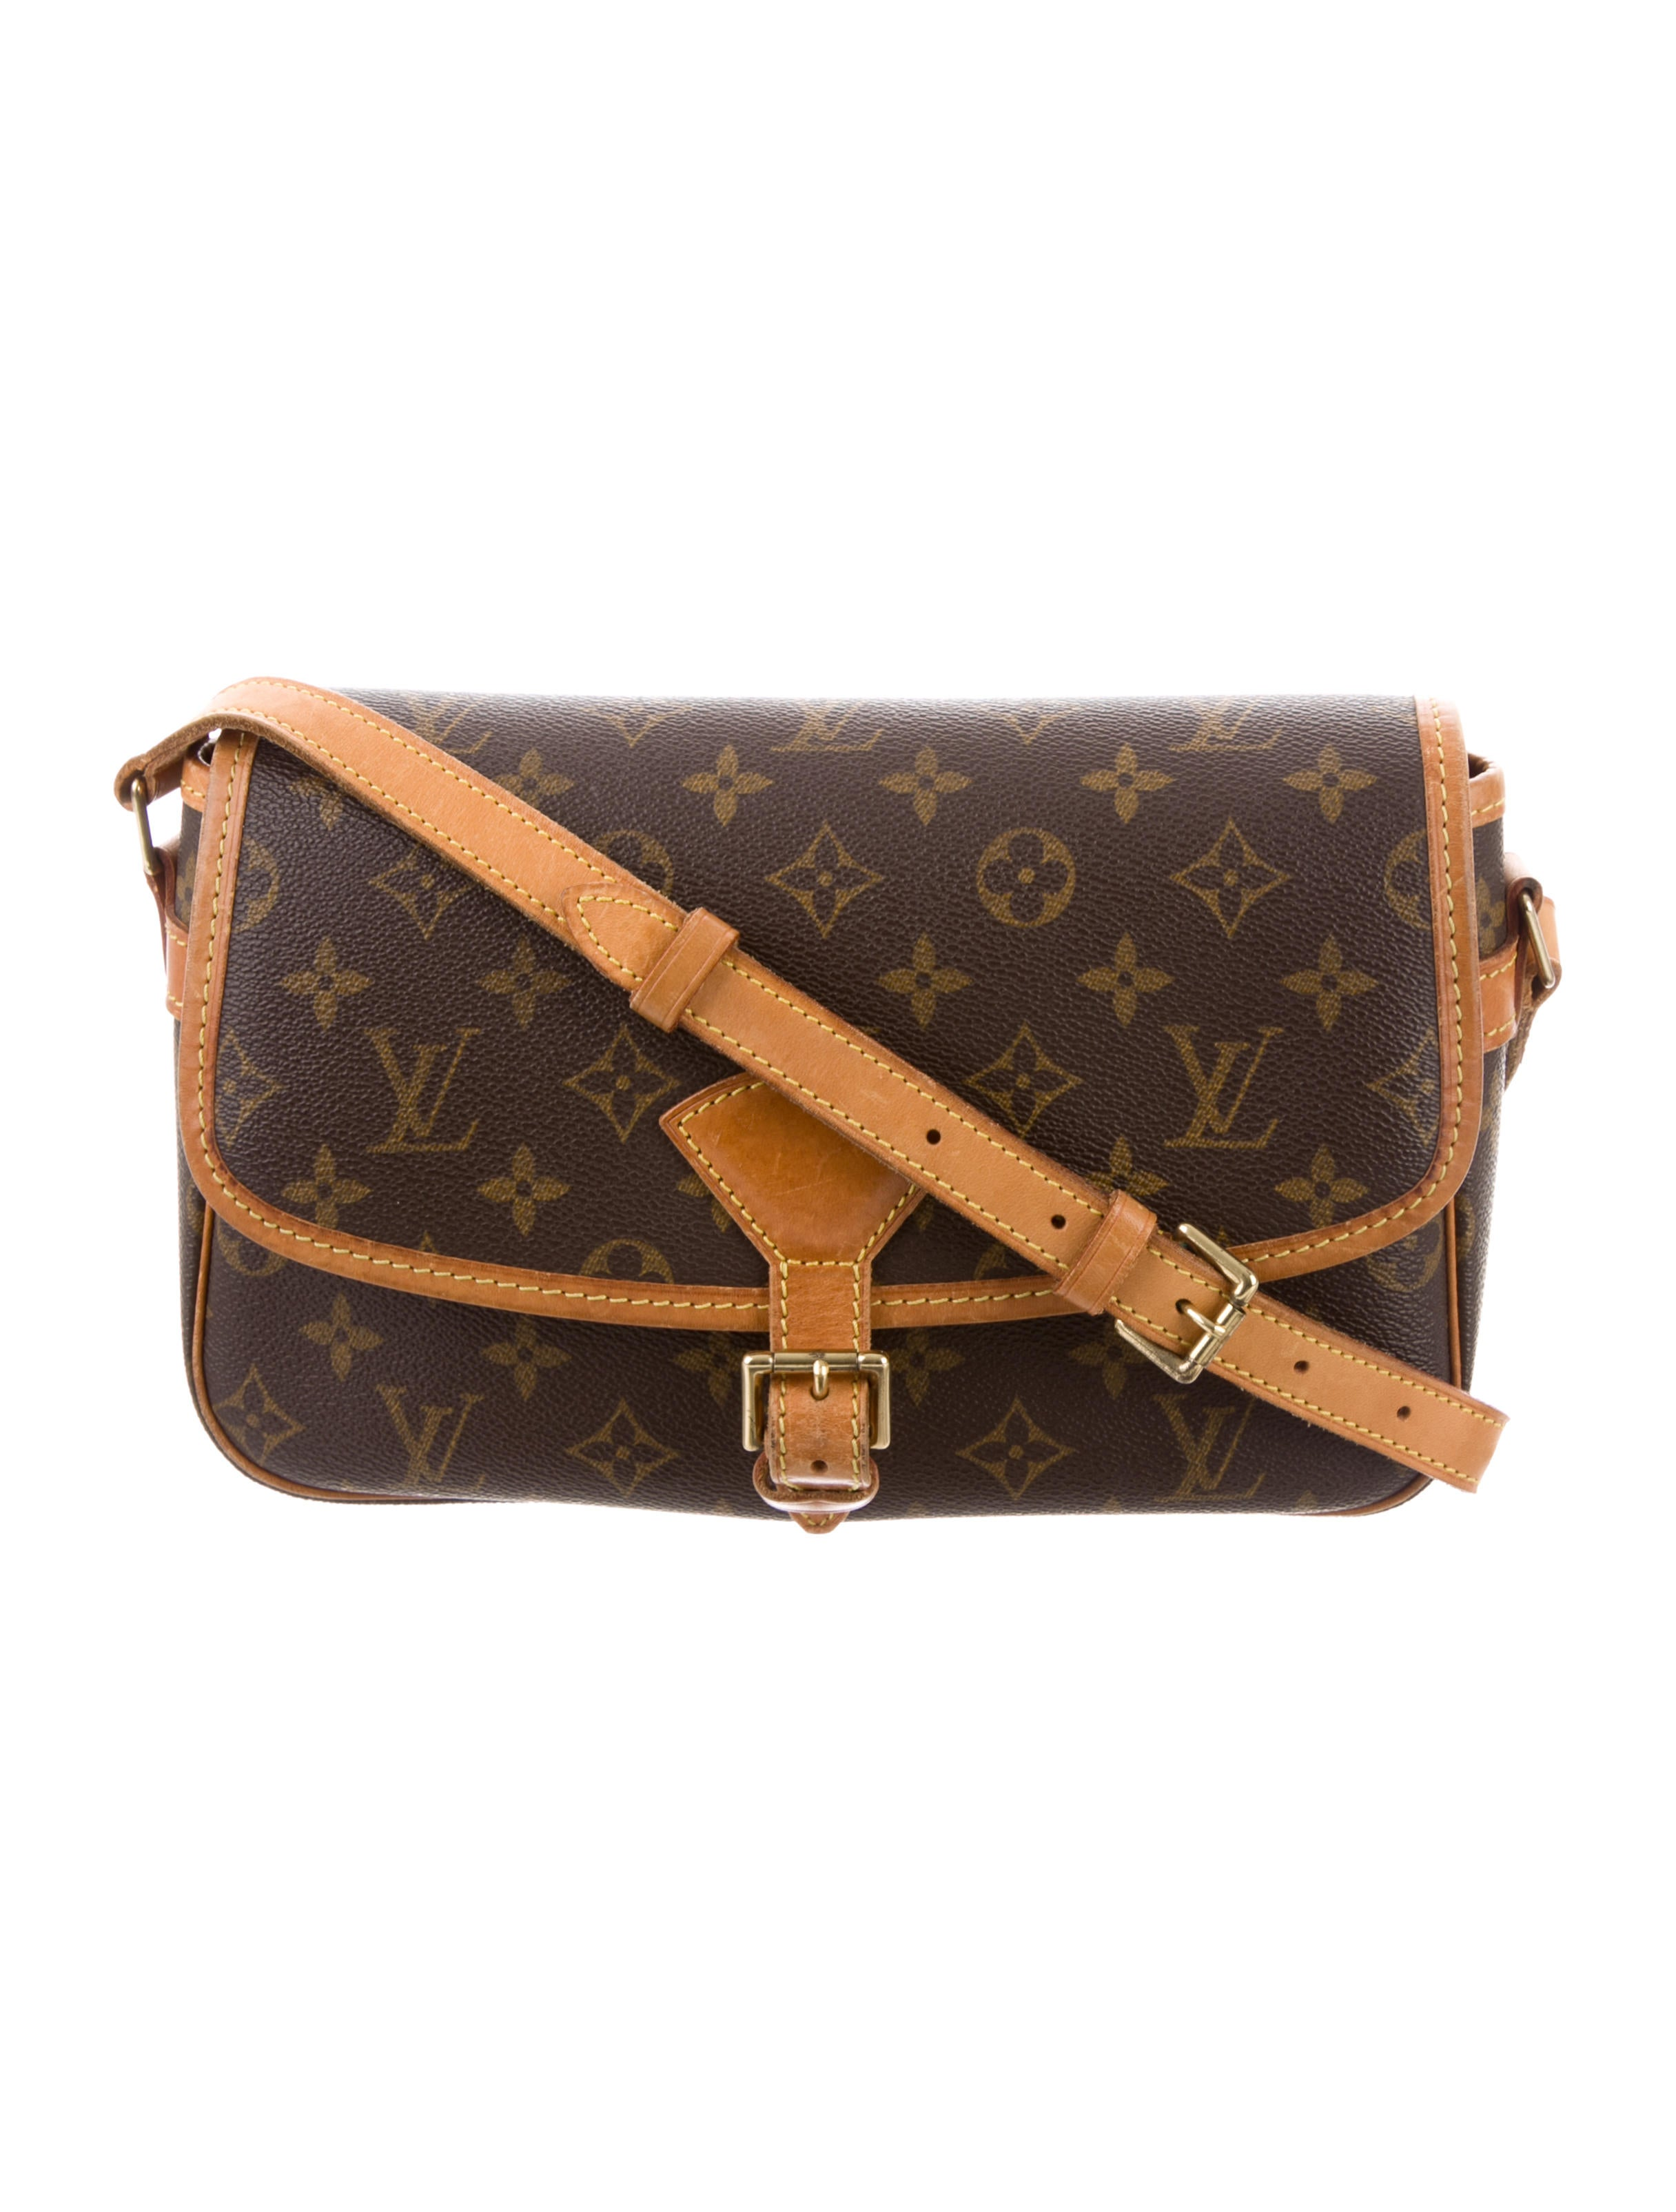 b0edf07ab311 Louis Vuitton Monogram Sologne Crossbody - Handbags - LOU100494 ...